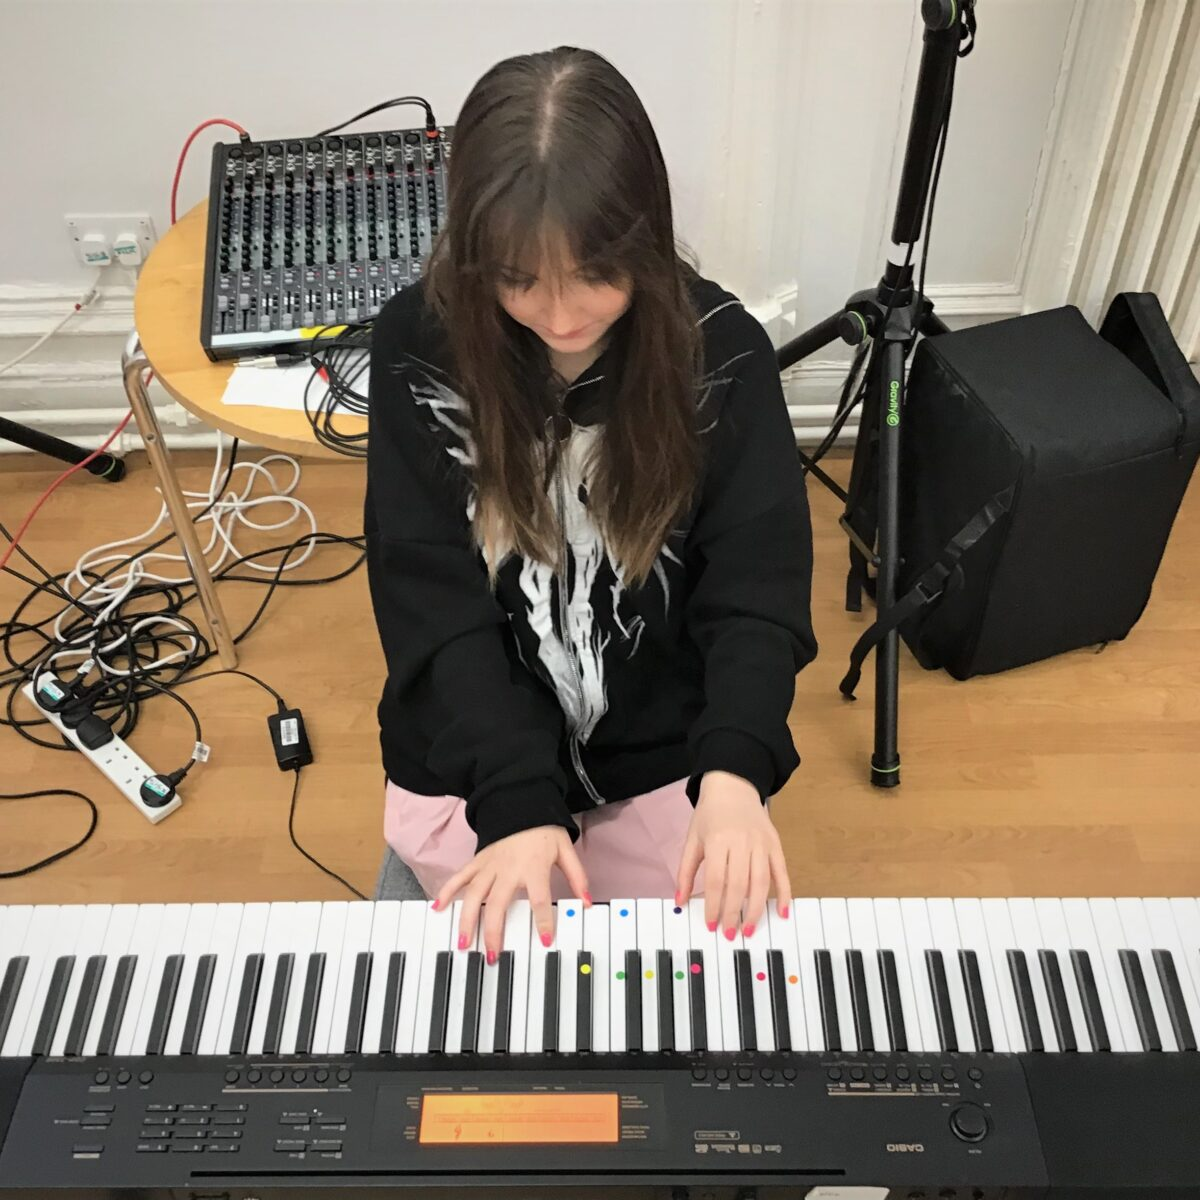 A girl sitting down and playing the piano keyboard